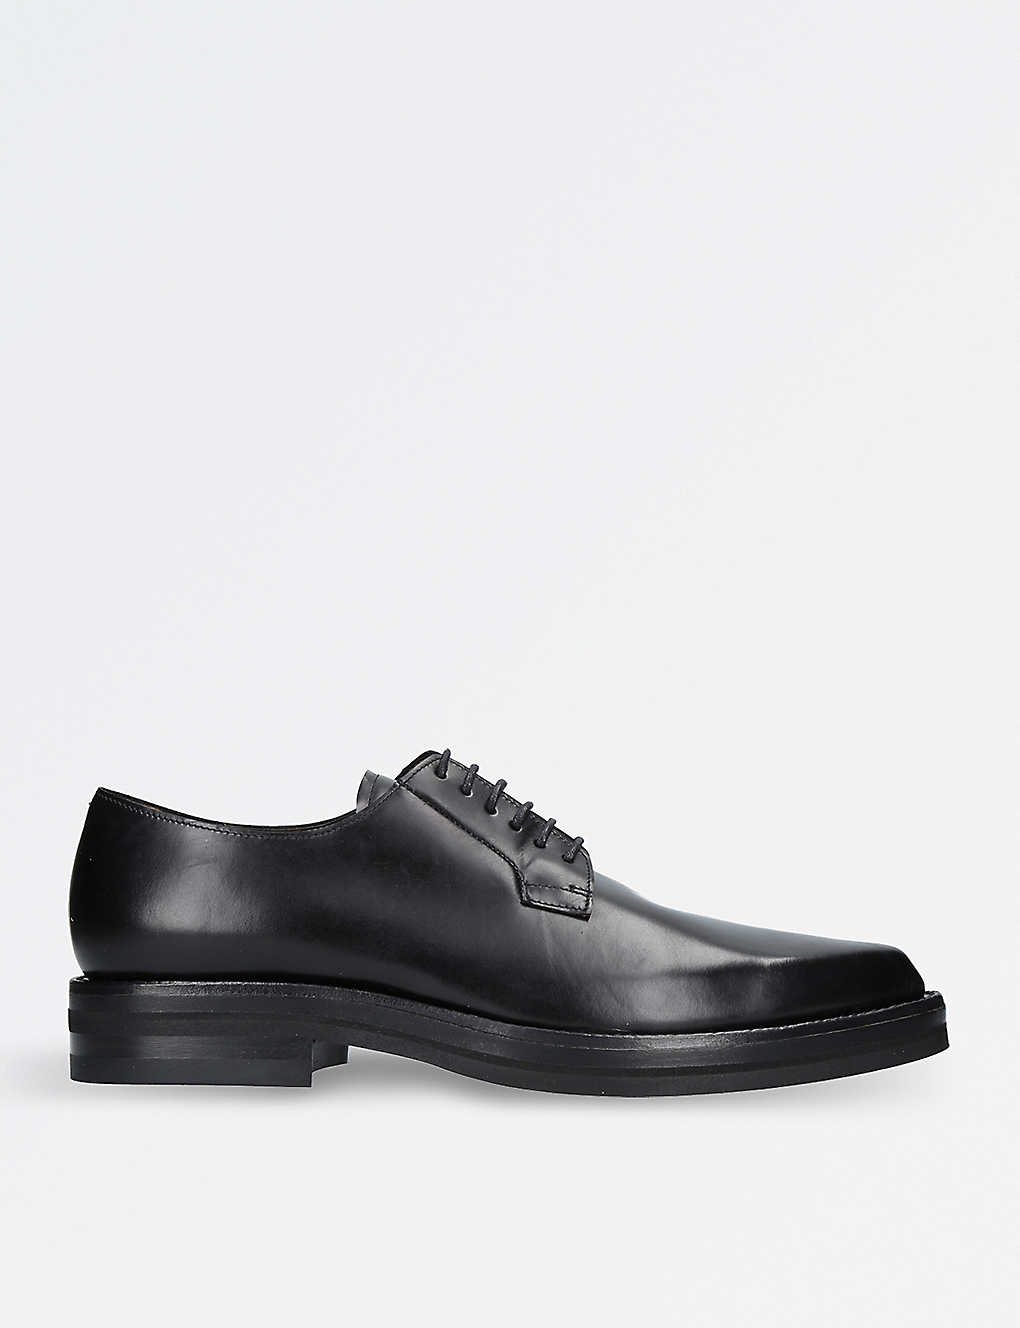 DRIES VAN NOTEN - Pointed-toe leather Derby shoes  f4303a0be